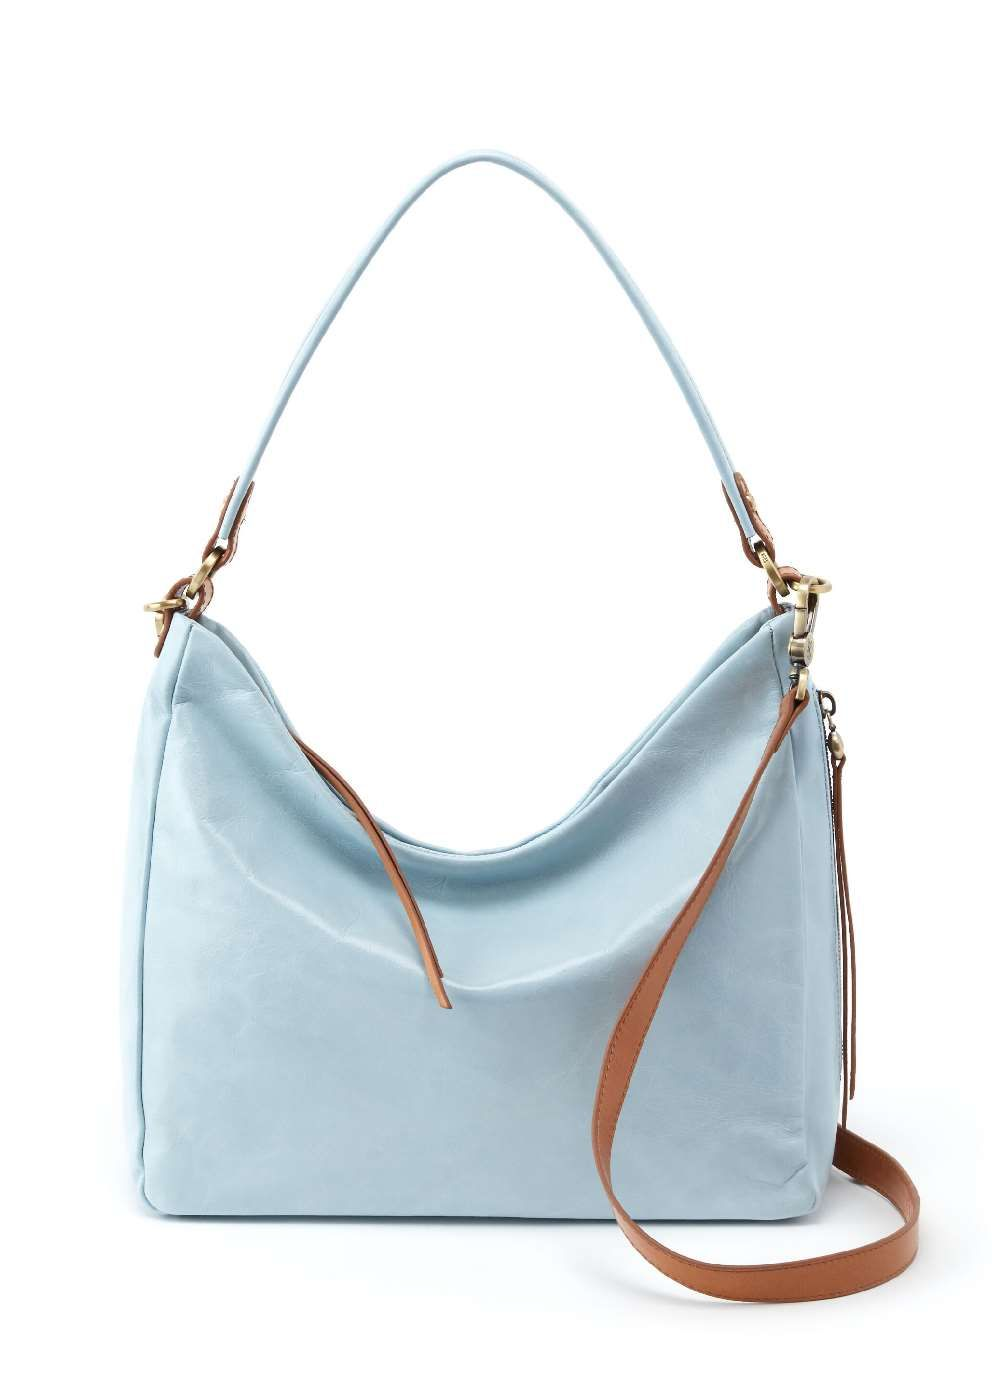 HOBO Delilah Whisper Blue Crossbody Shoulder Bag